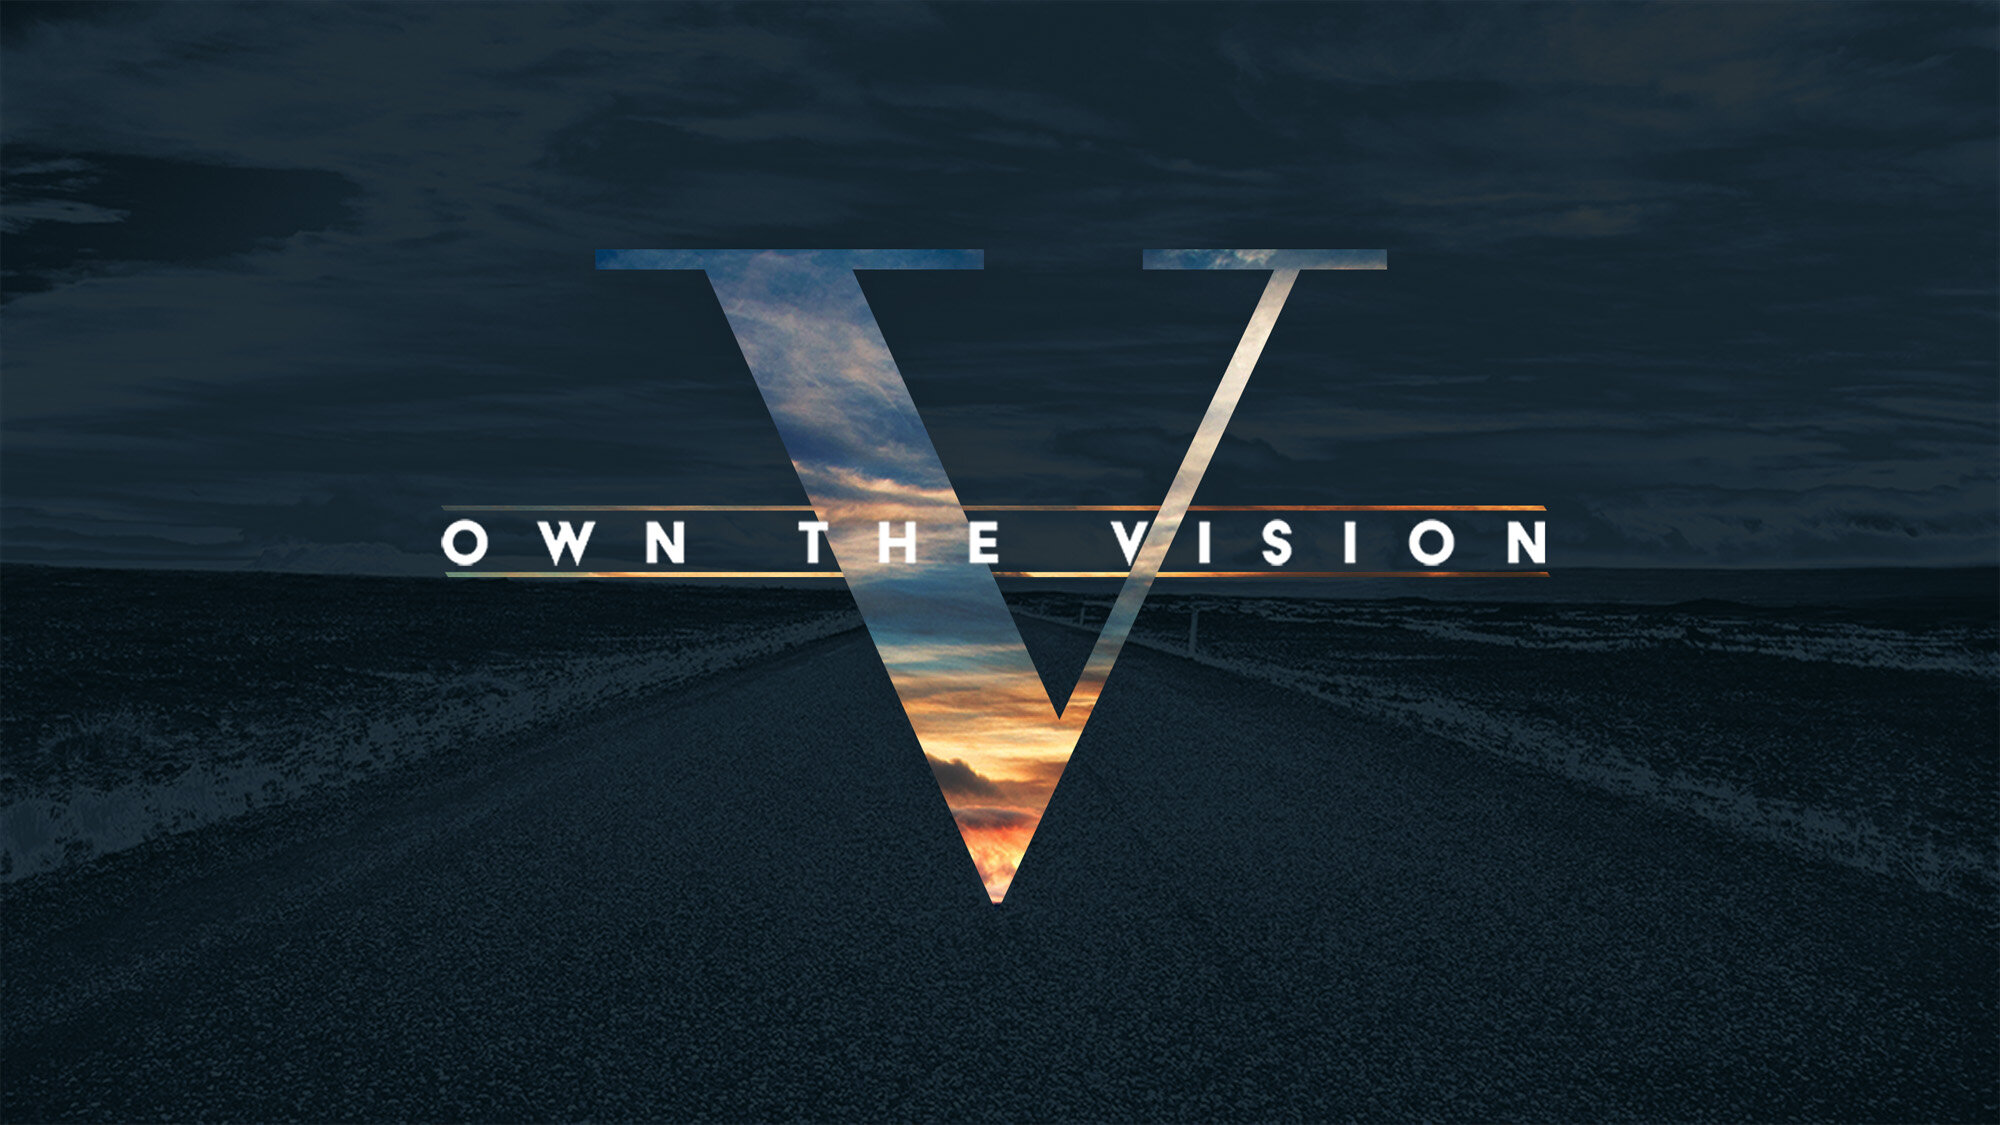 own_the_vision-title-1-Wide 16x9.jpg